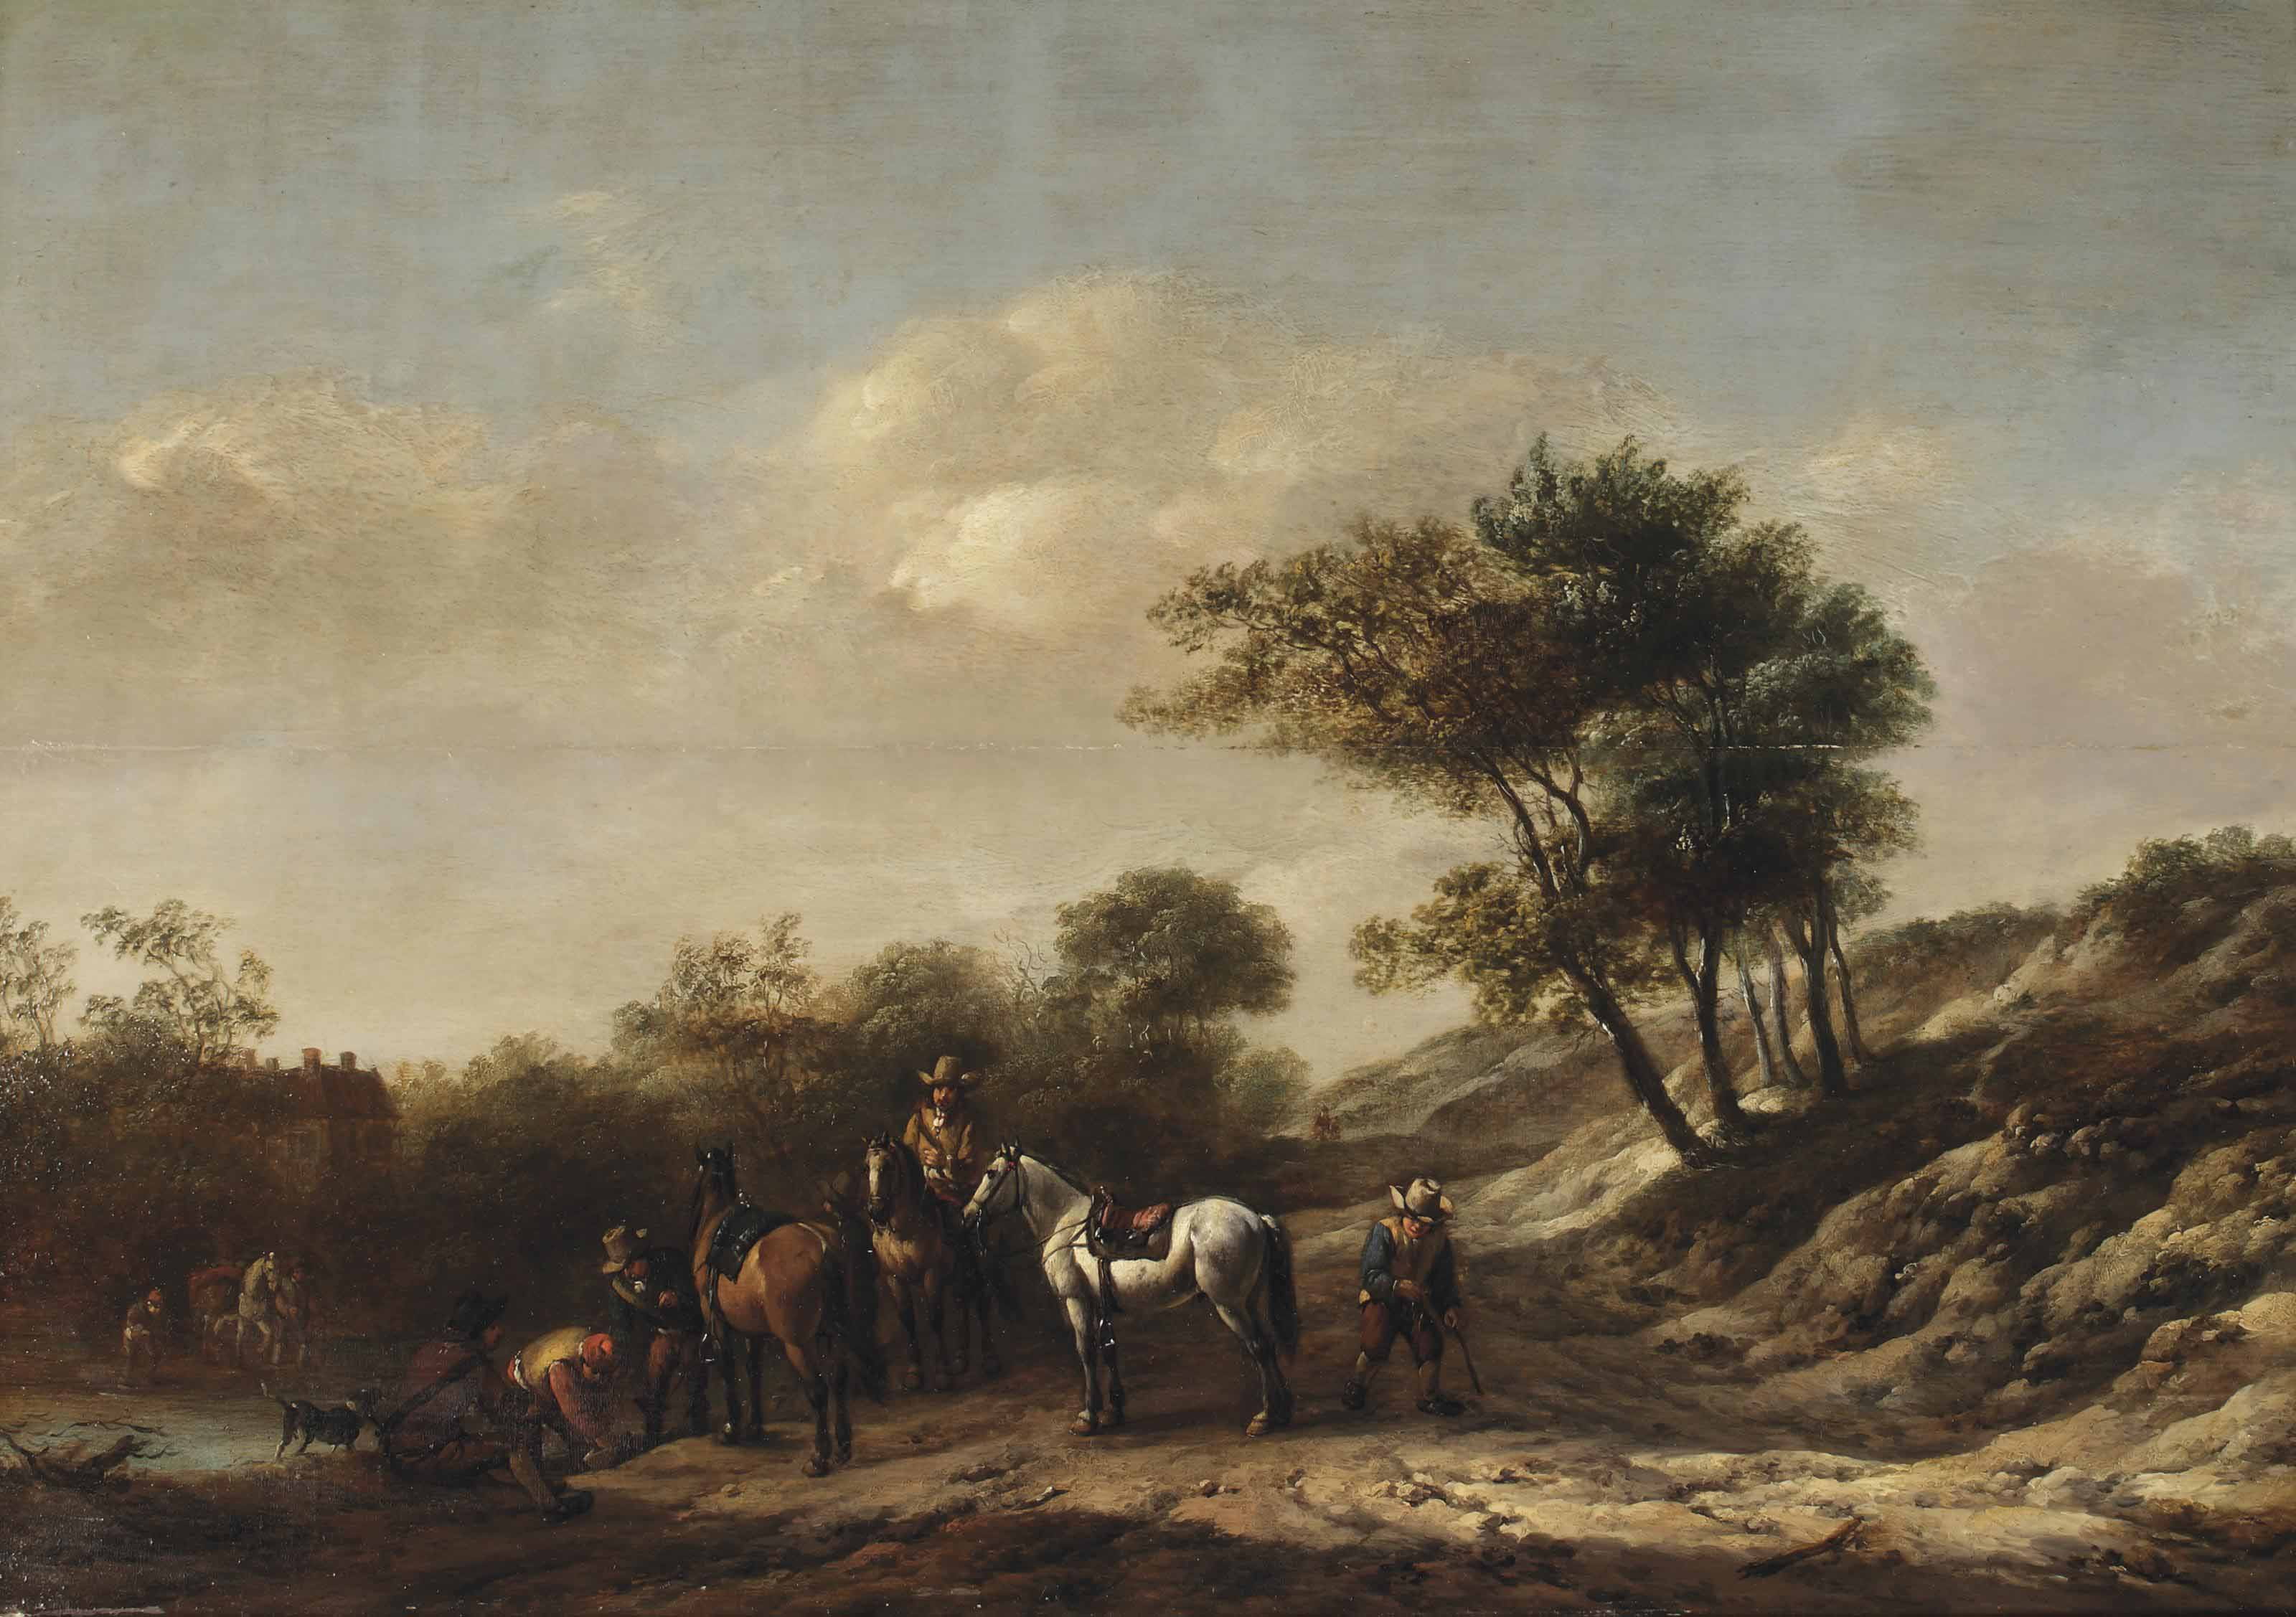 A landscape with riders and travellers by a river